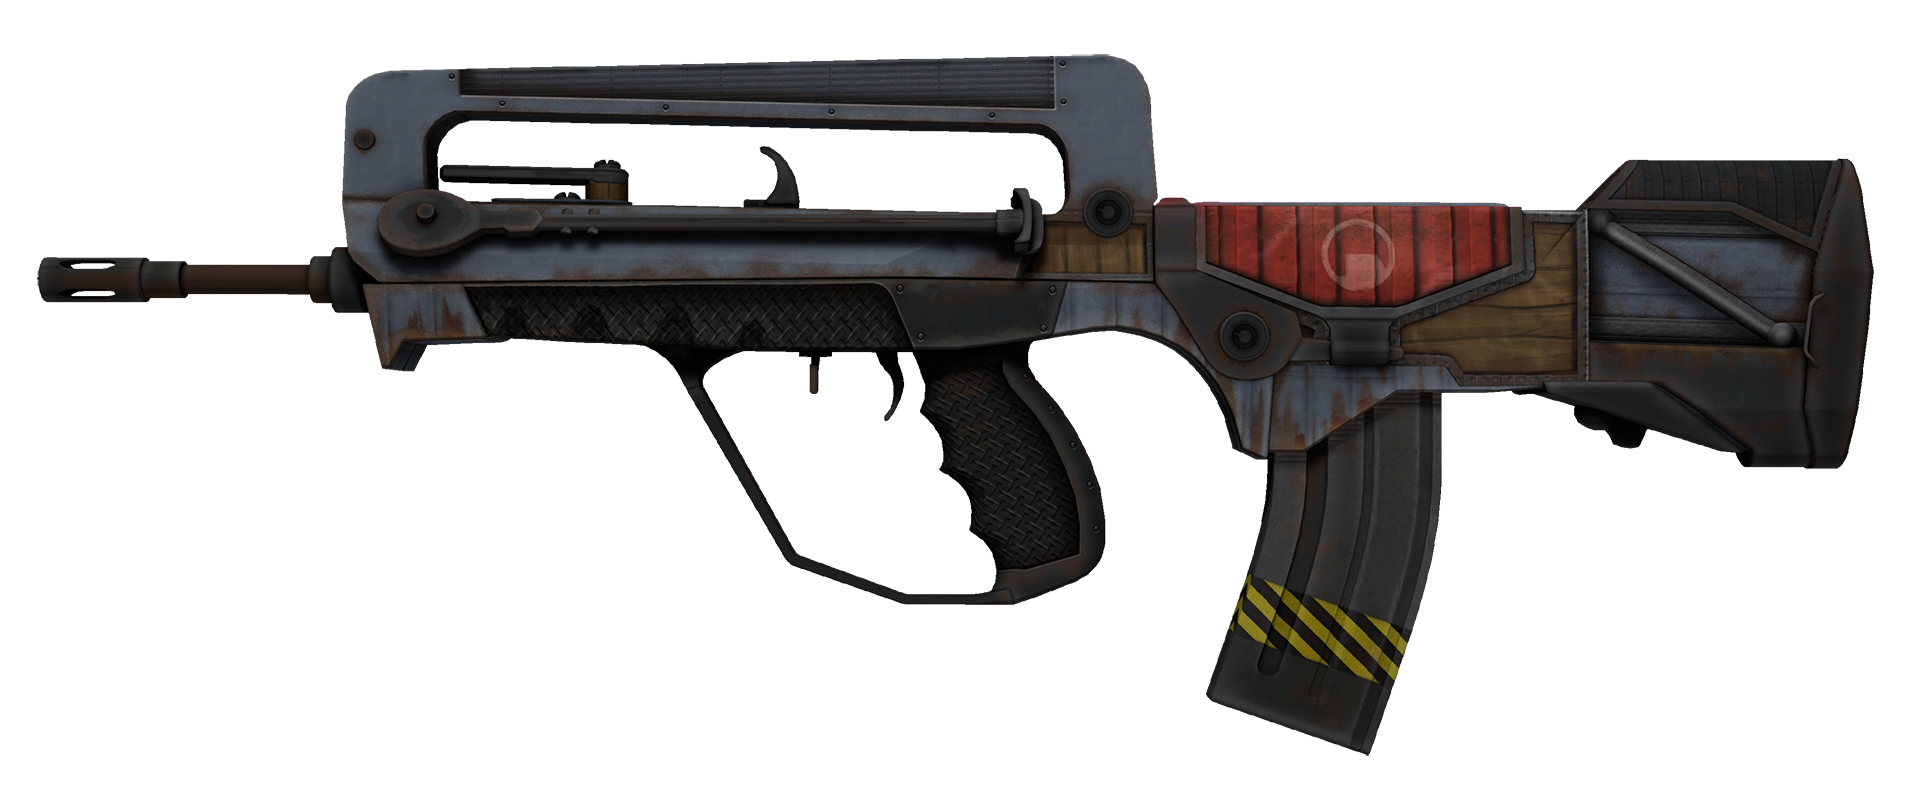 FAMAS Decommissioned Large Rendering